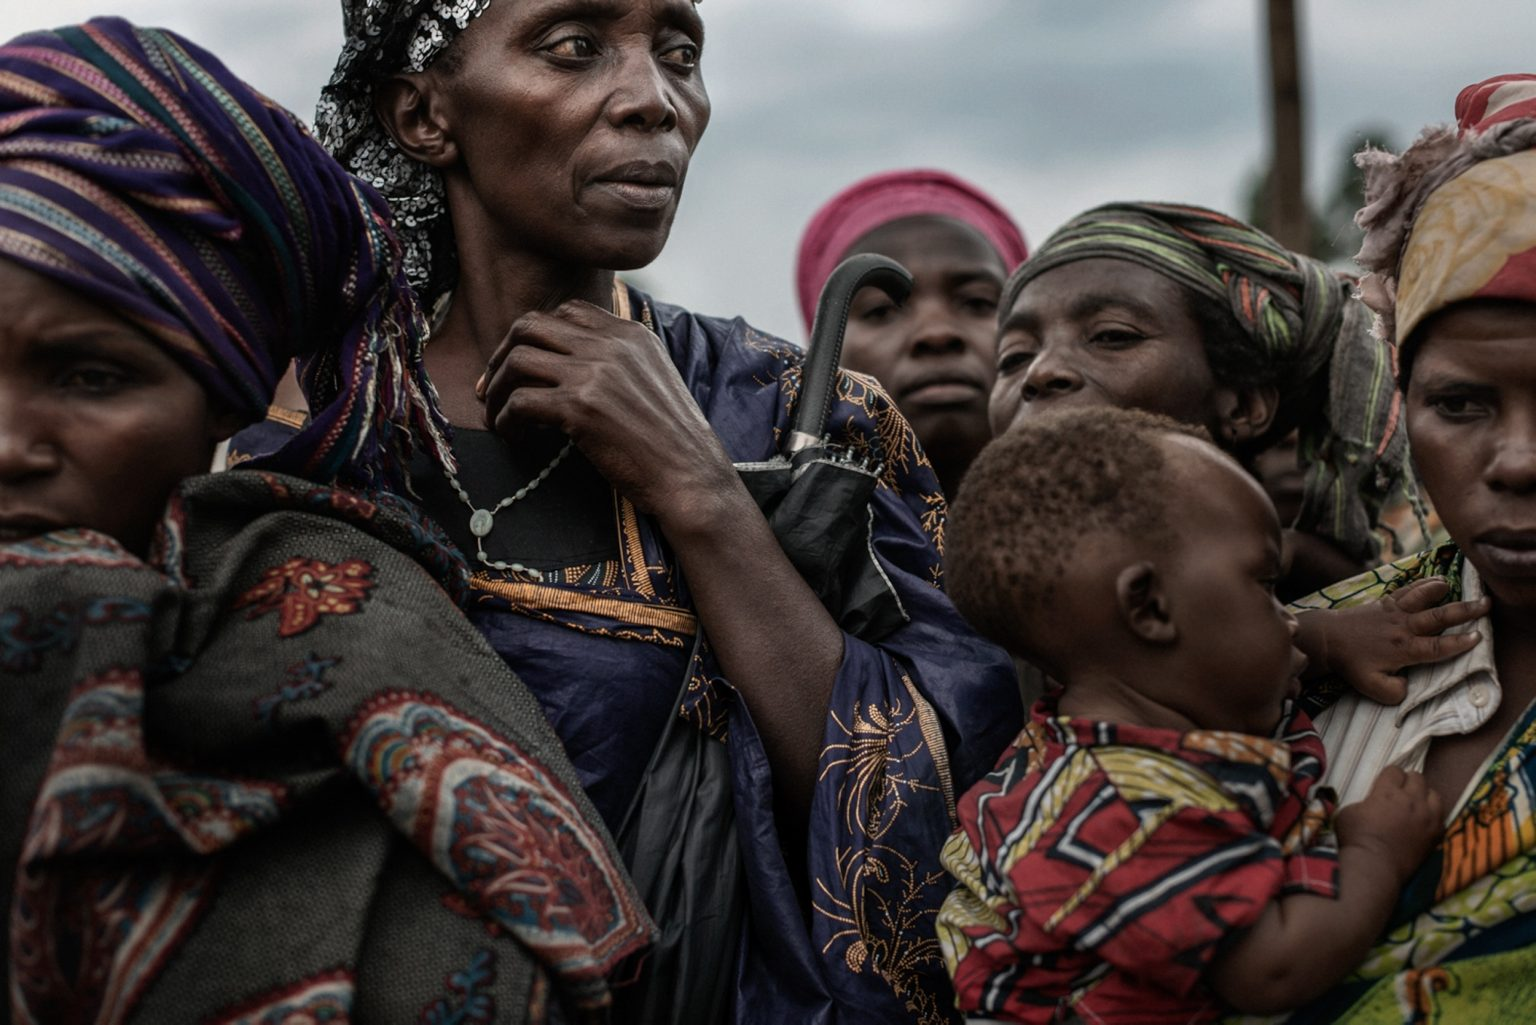 democratic-republic-of-the-congo-goma-2017-a-group-of-vulnerable-women-who-live-in-what-remains-of-the-tent-city-of-mugunga-3-every-monththe-association-of-congolese-muslim-women-afac-consisti